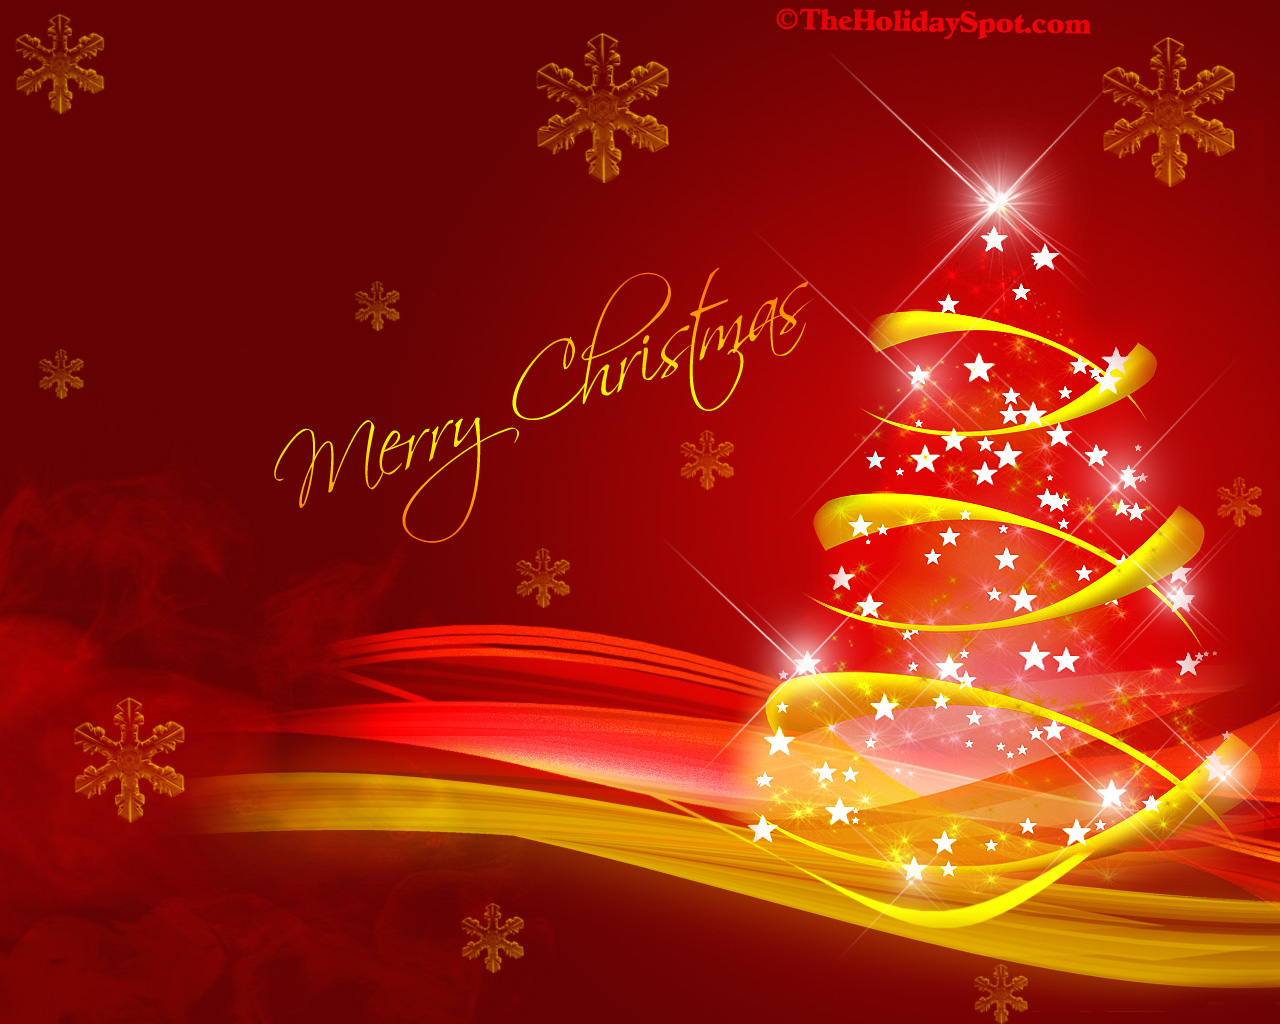 Christmas Wallpapers Merry Christmas Cards 1280x1024